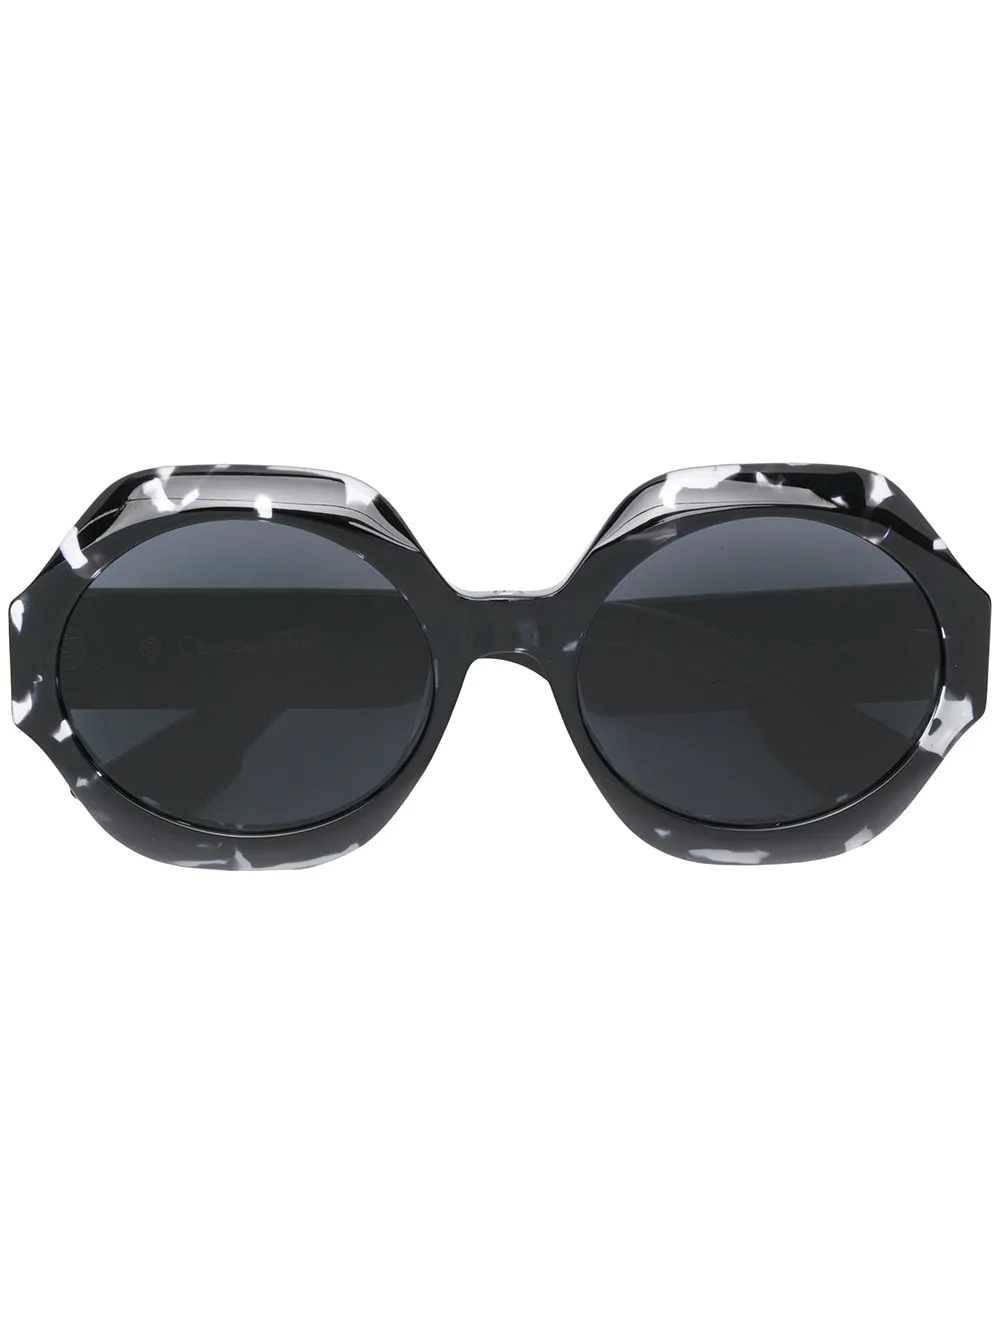 27a705d0de15 Dior Eyewear Spirit Sunglasses - Black